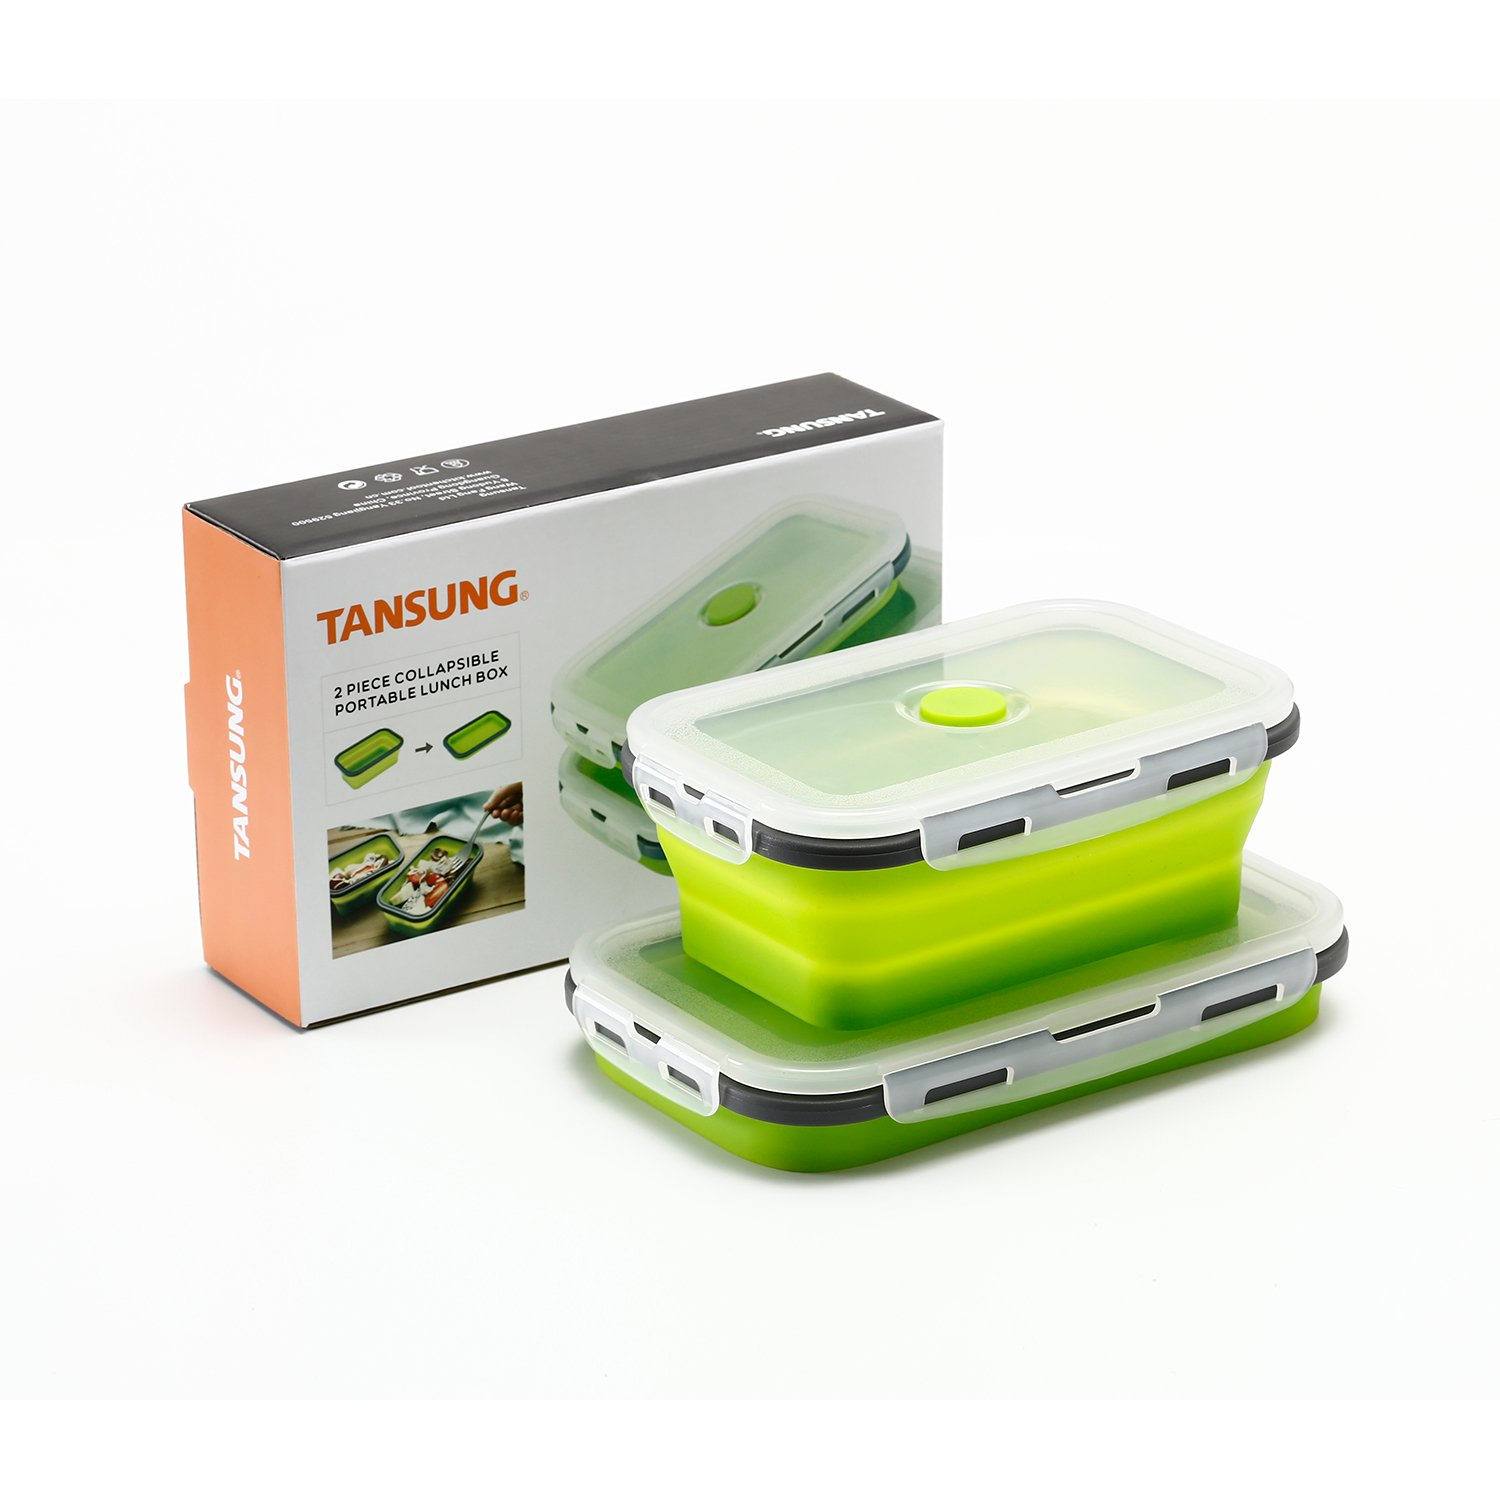 TANSUNG Silicone Collapsible Food Storage Containers - Set of 2 Bento Lunchboxes, BPA Free, Microwave, Dishwasher and Freezer Safe (800ML, 1200ML) (Large 28oz, X-Large 42oz)